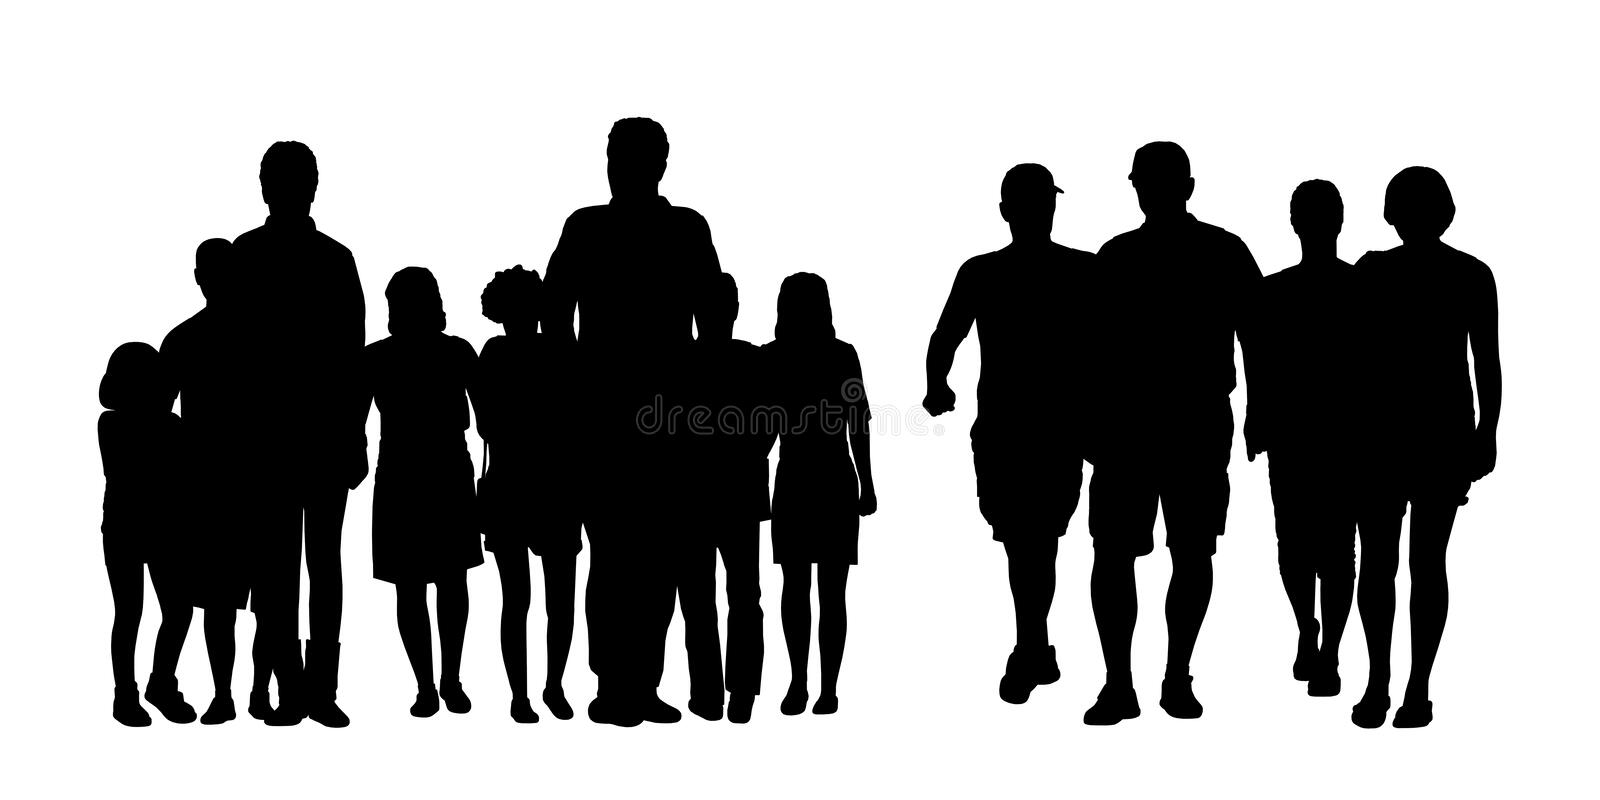 Groups of people walking outdoor silhouettes set 1 stock illustration